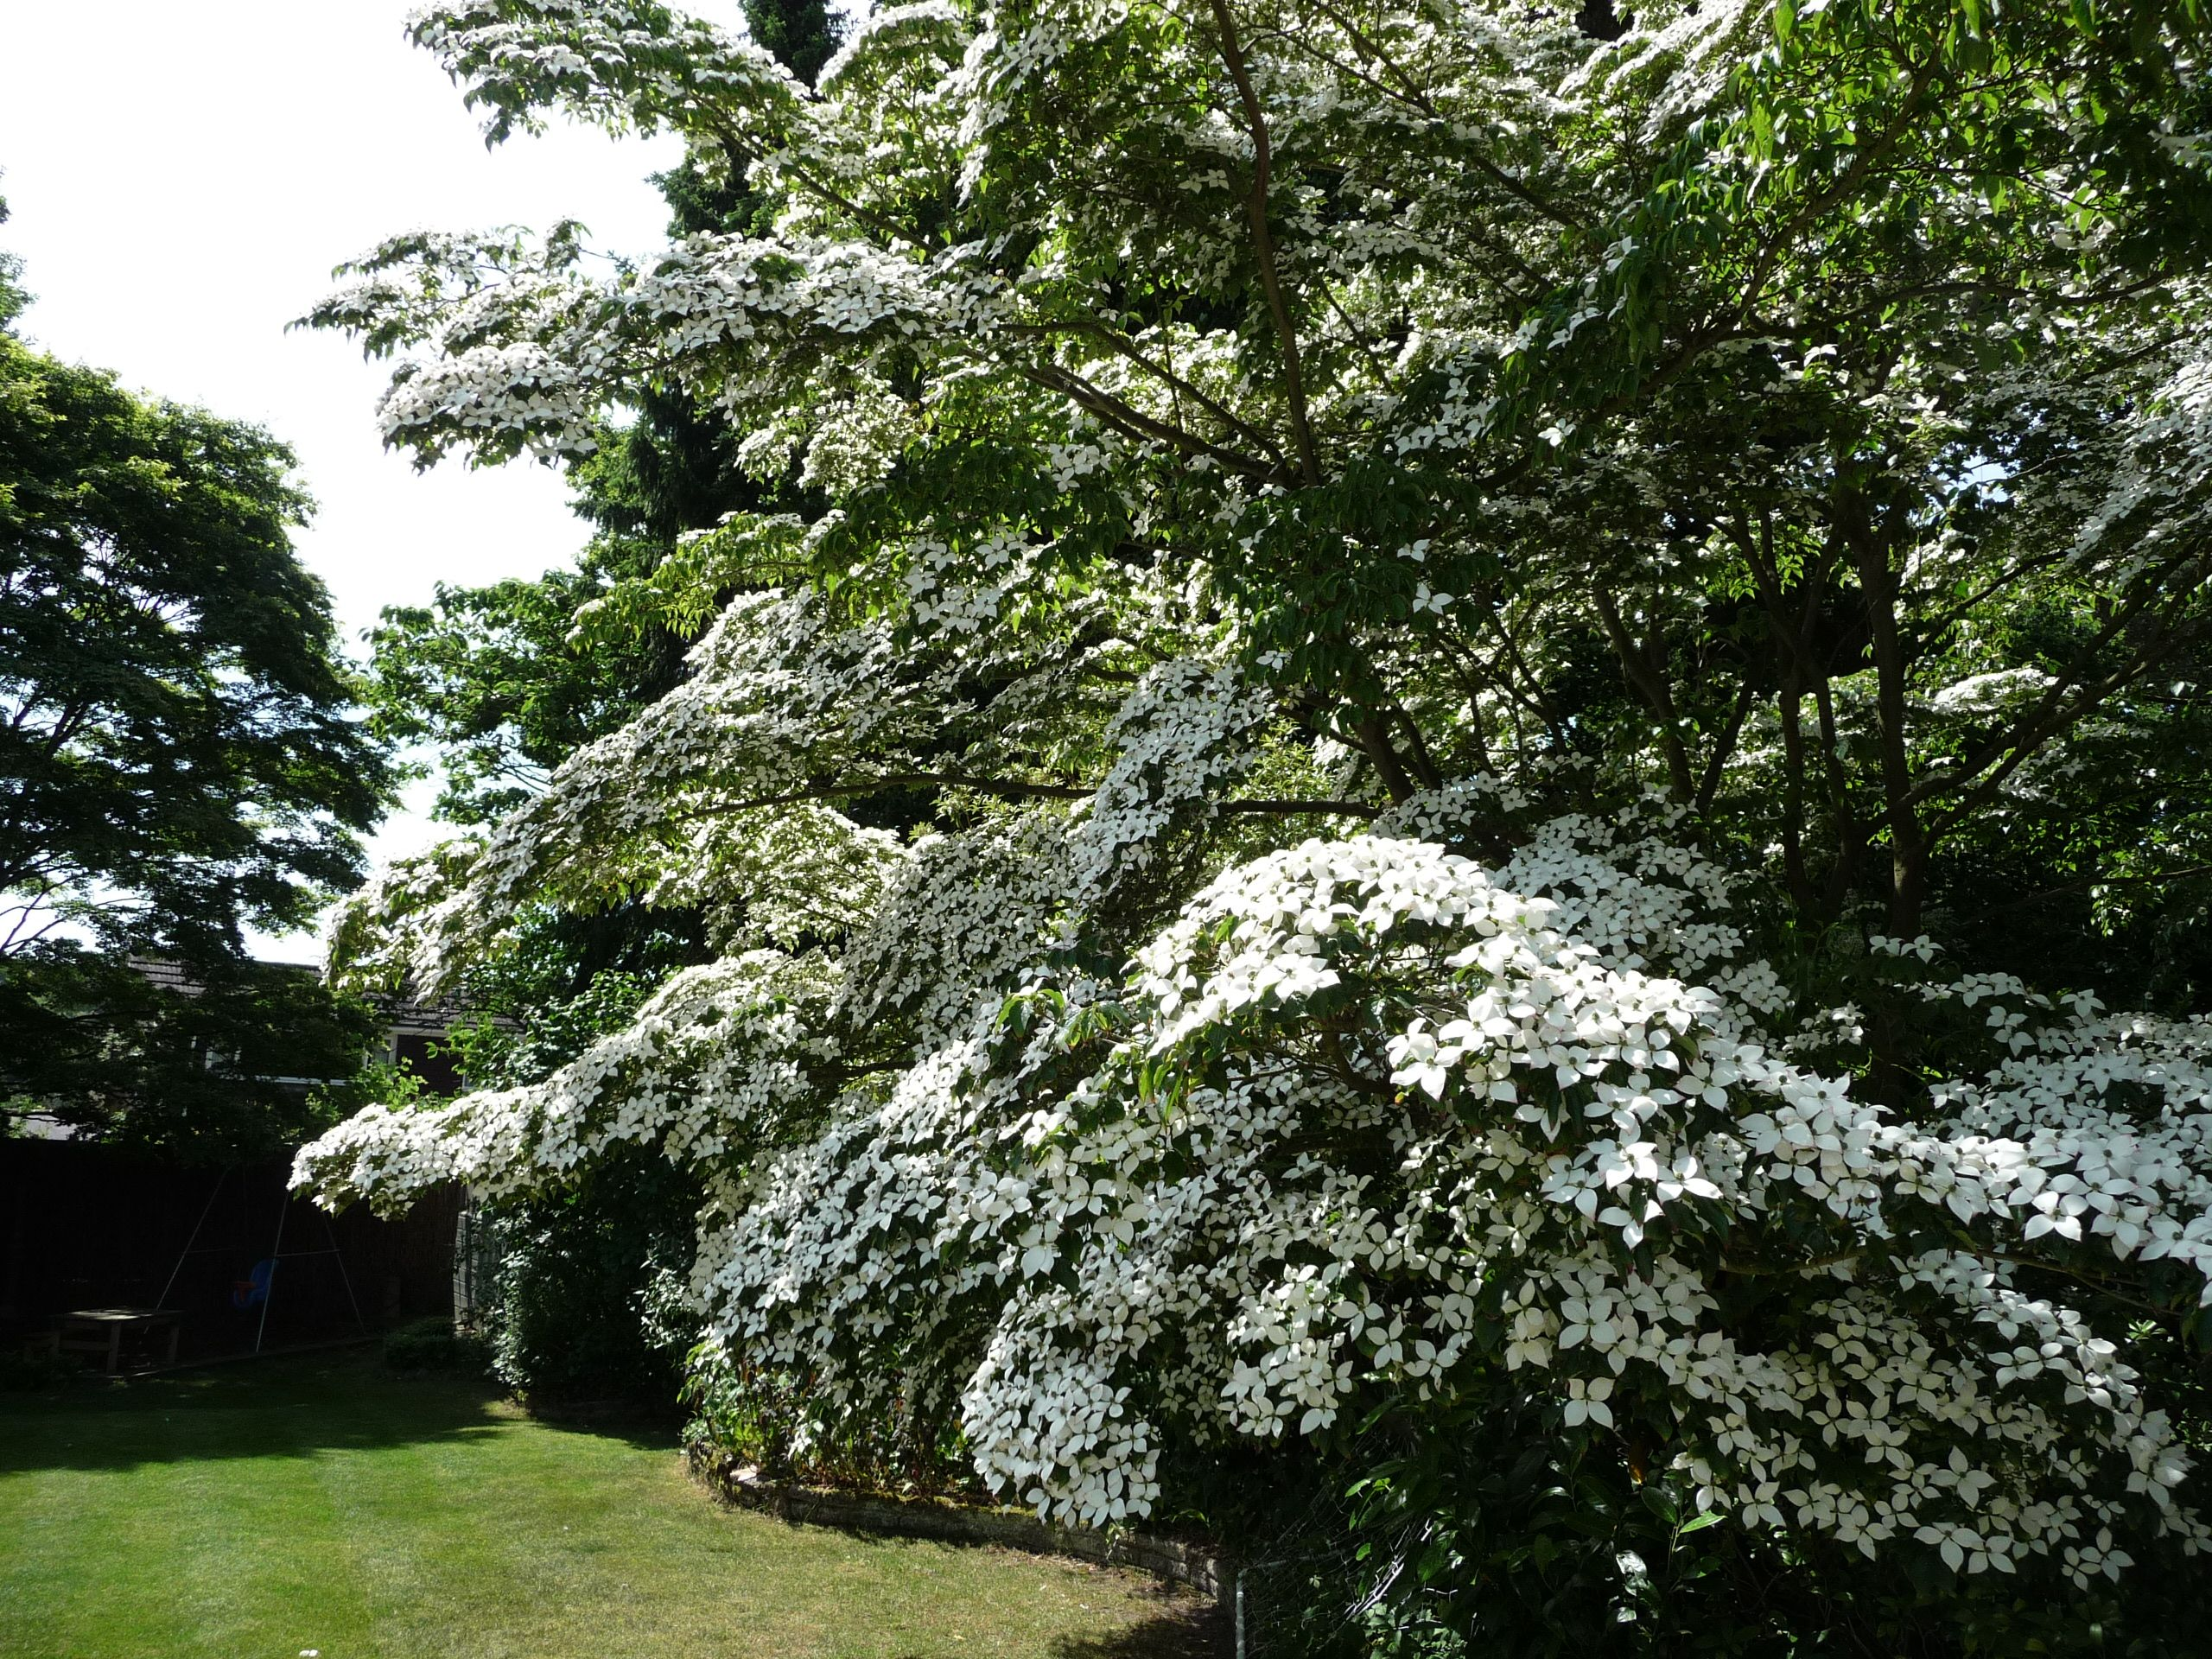 One of the most spectacular trees I've ever owned. Cornus